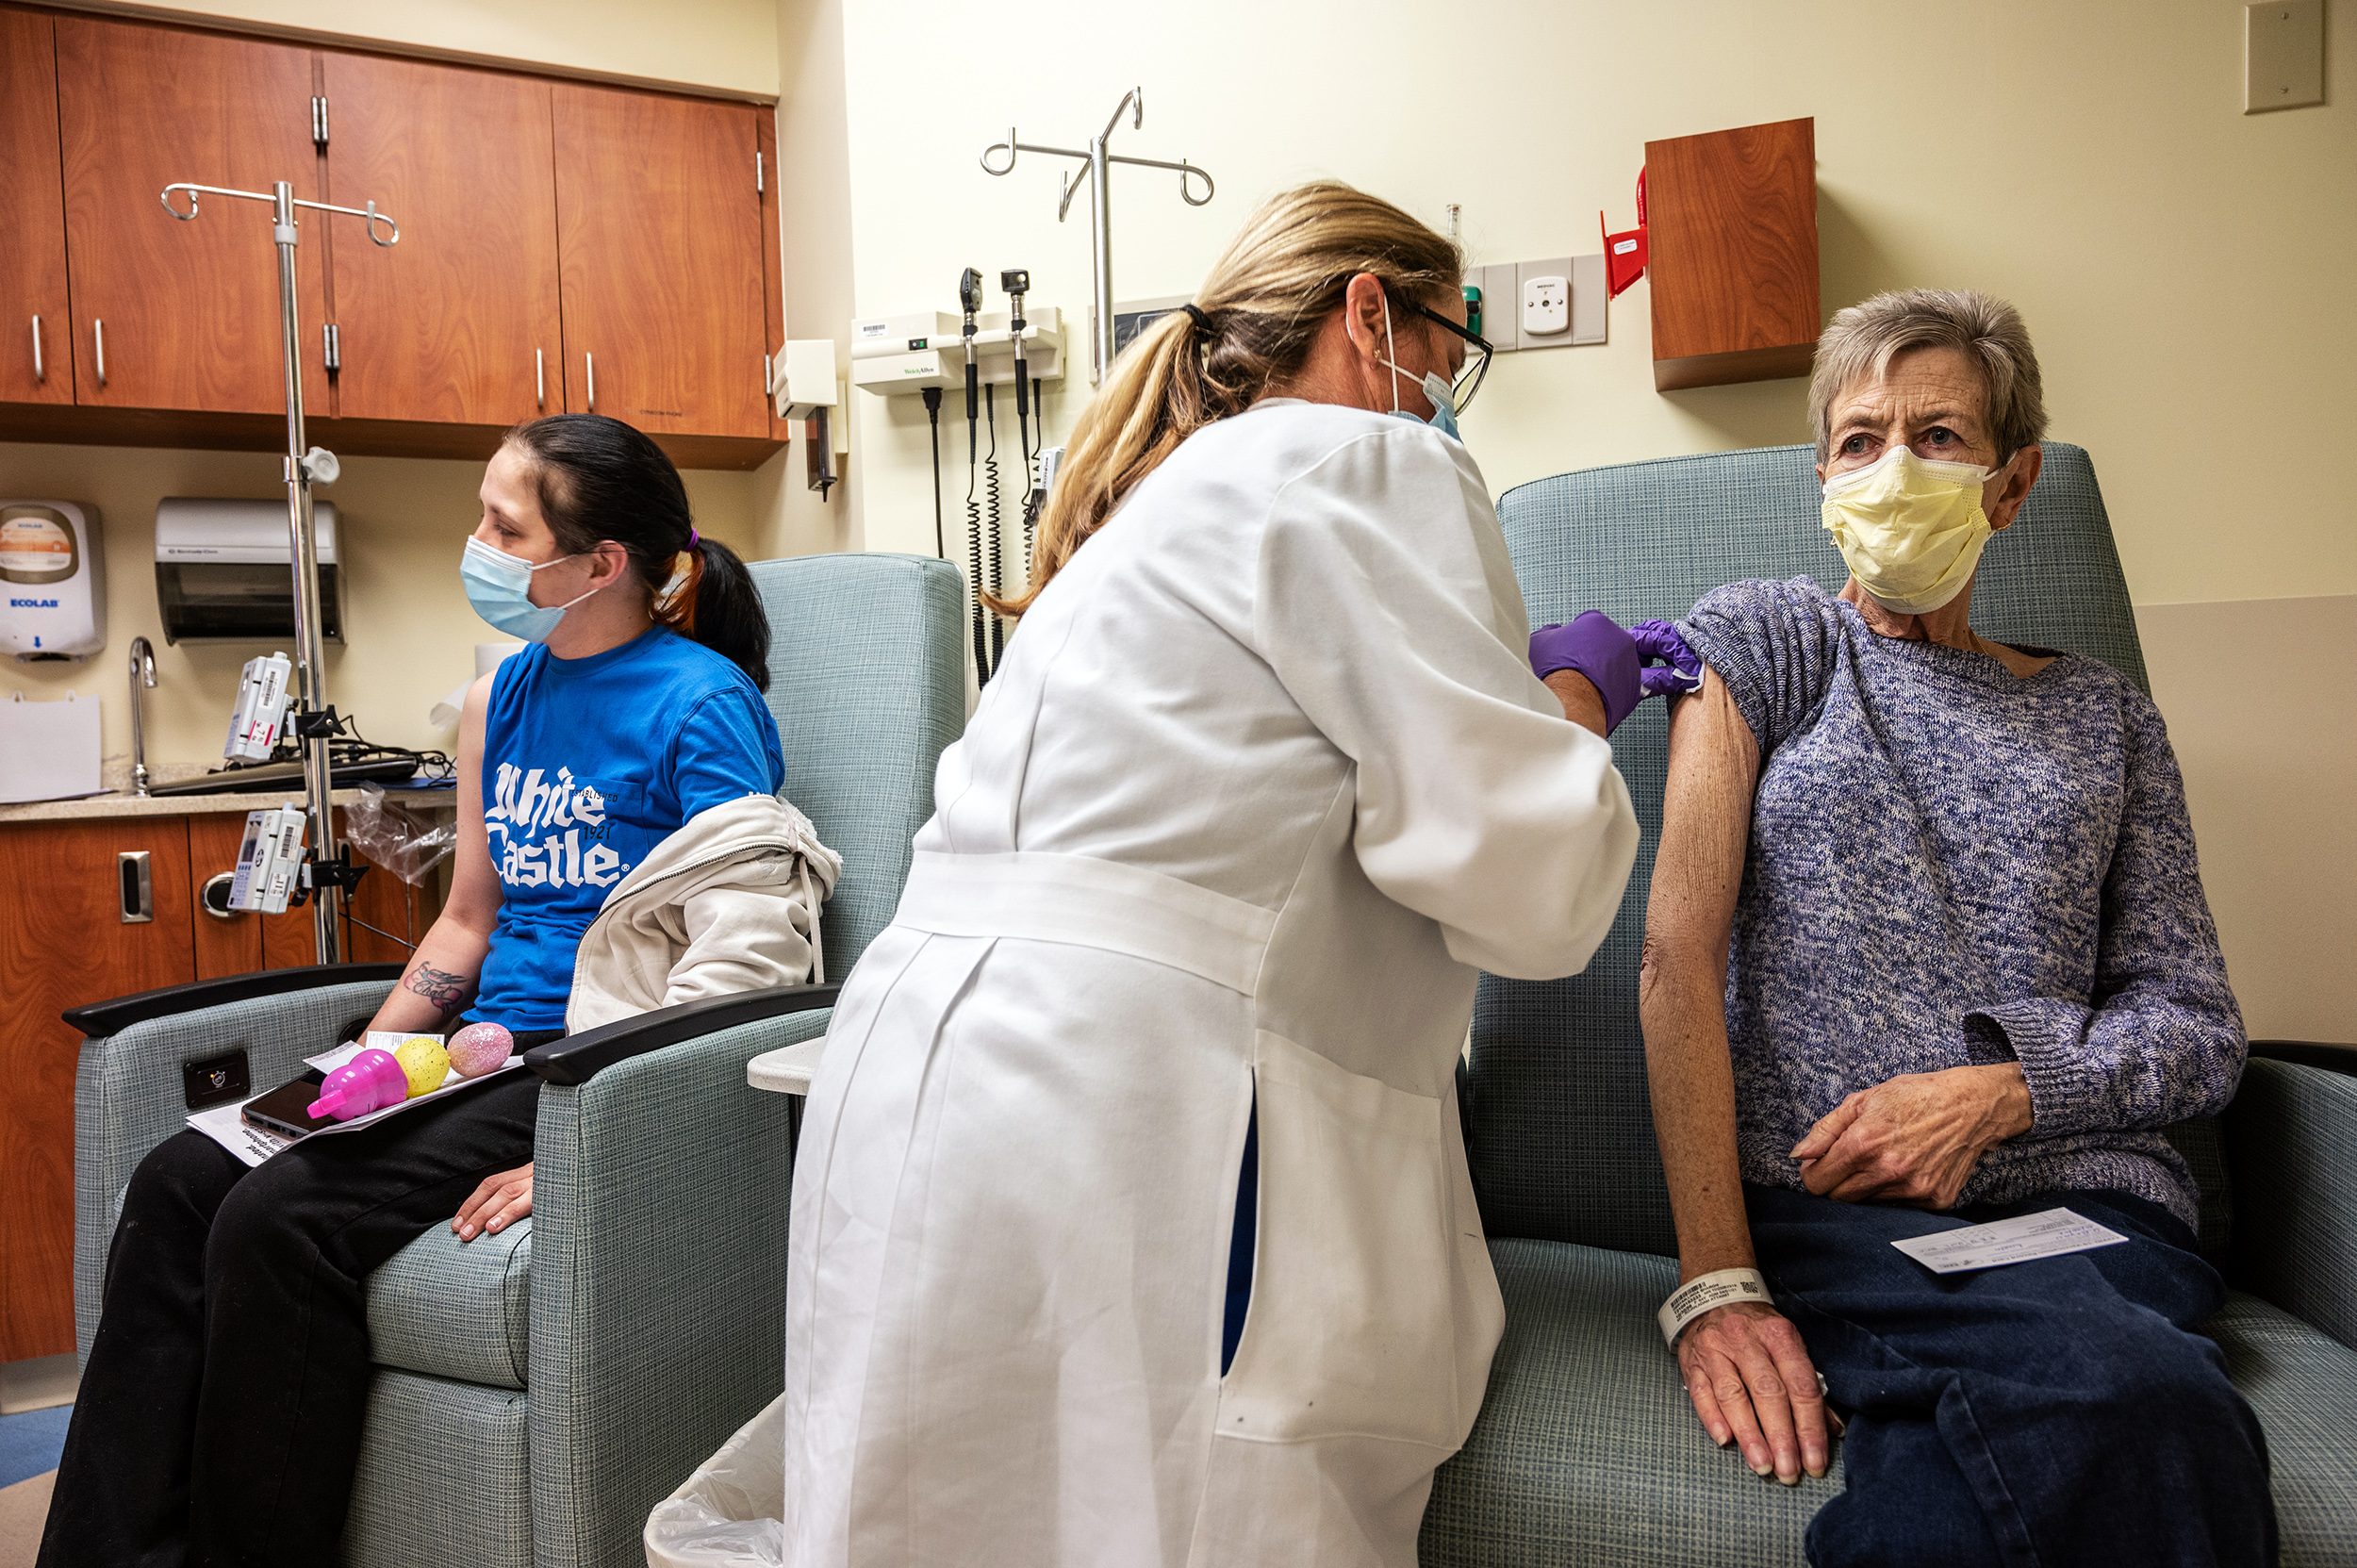 FDA poised to OK 3rd vaccine dose for immunocompromised people